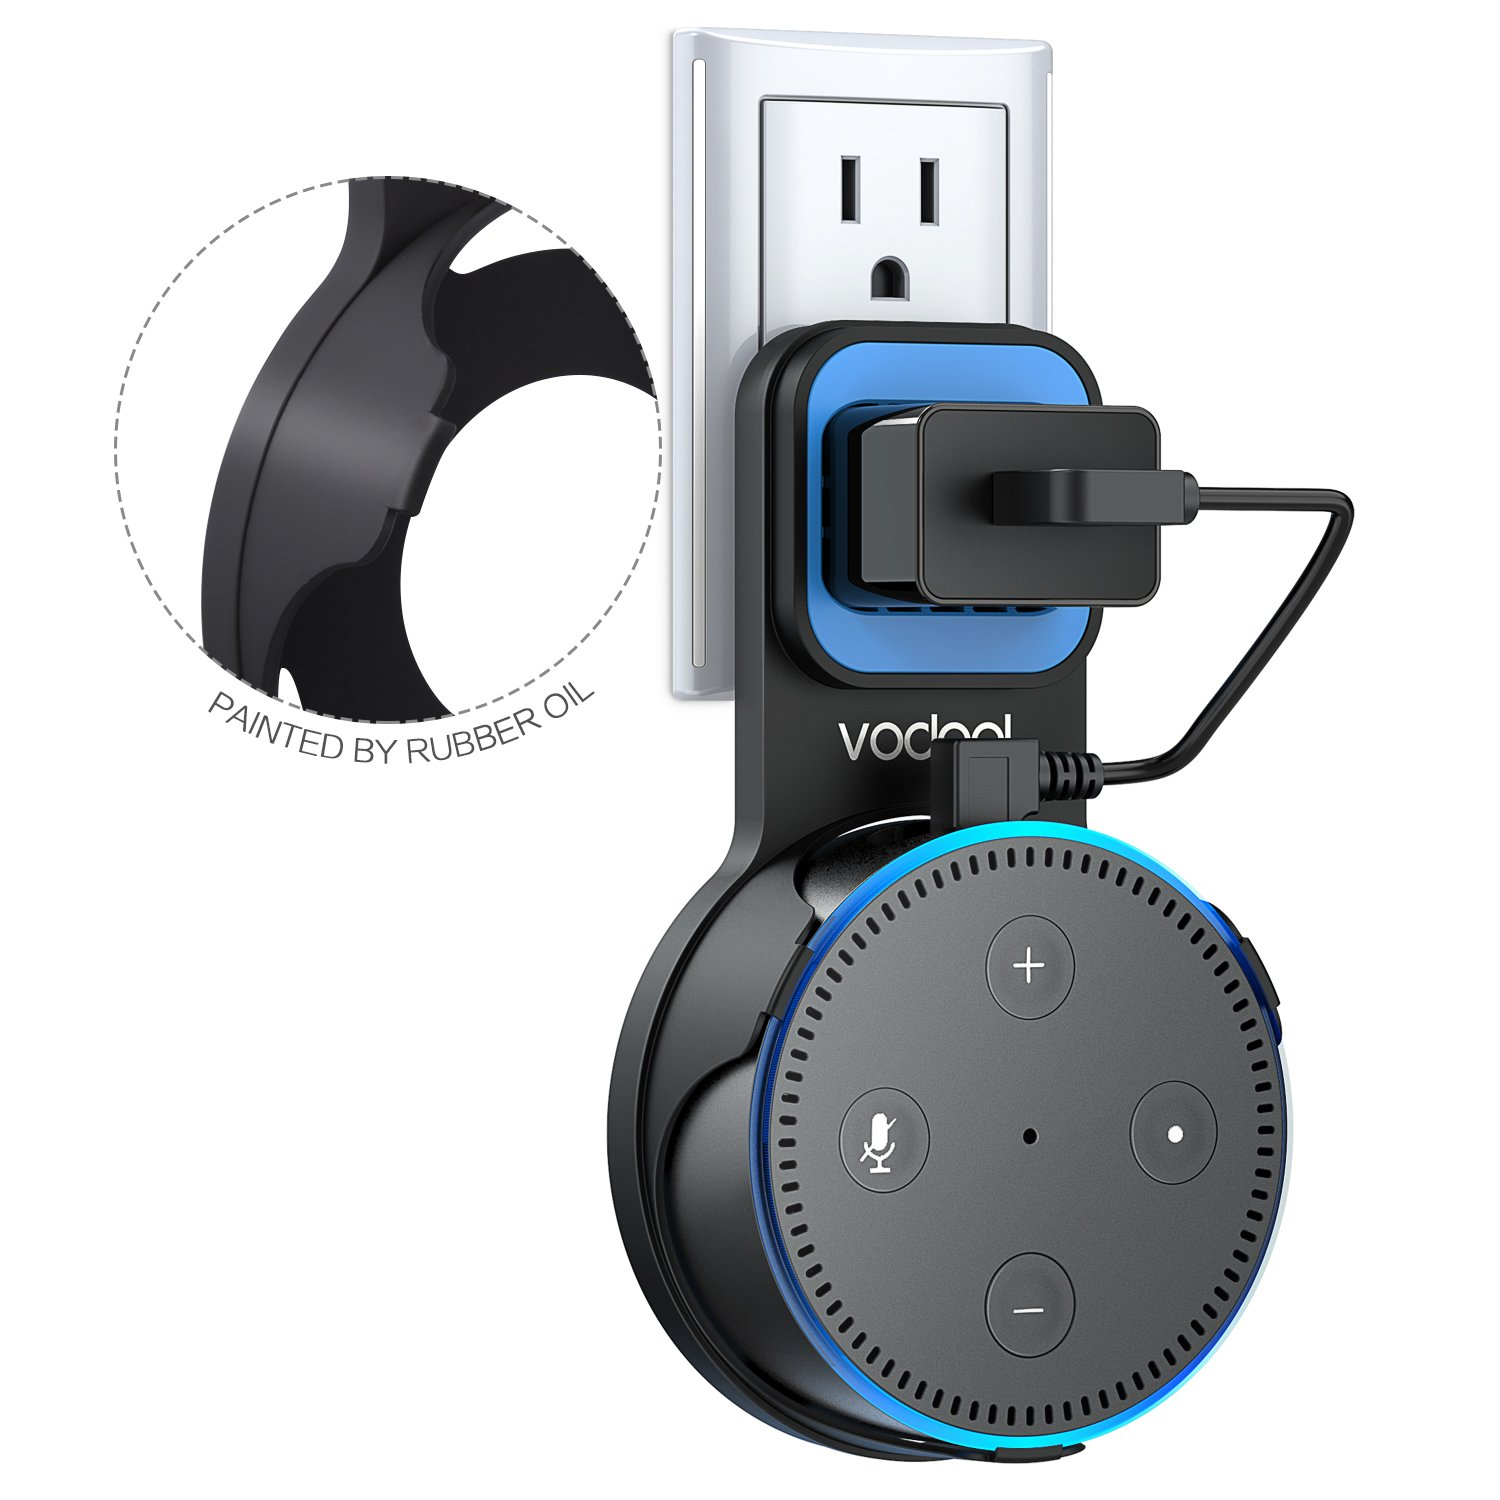 Wall Mount Stand for Echo Dot 2nd Generation, Vodool Hanger Holder Space-Saving Solution for Your Smart Home Speakers without Messy Wires or Screws, Charging Cable Provided - Black